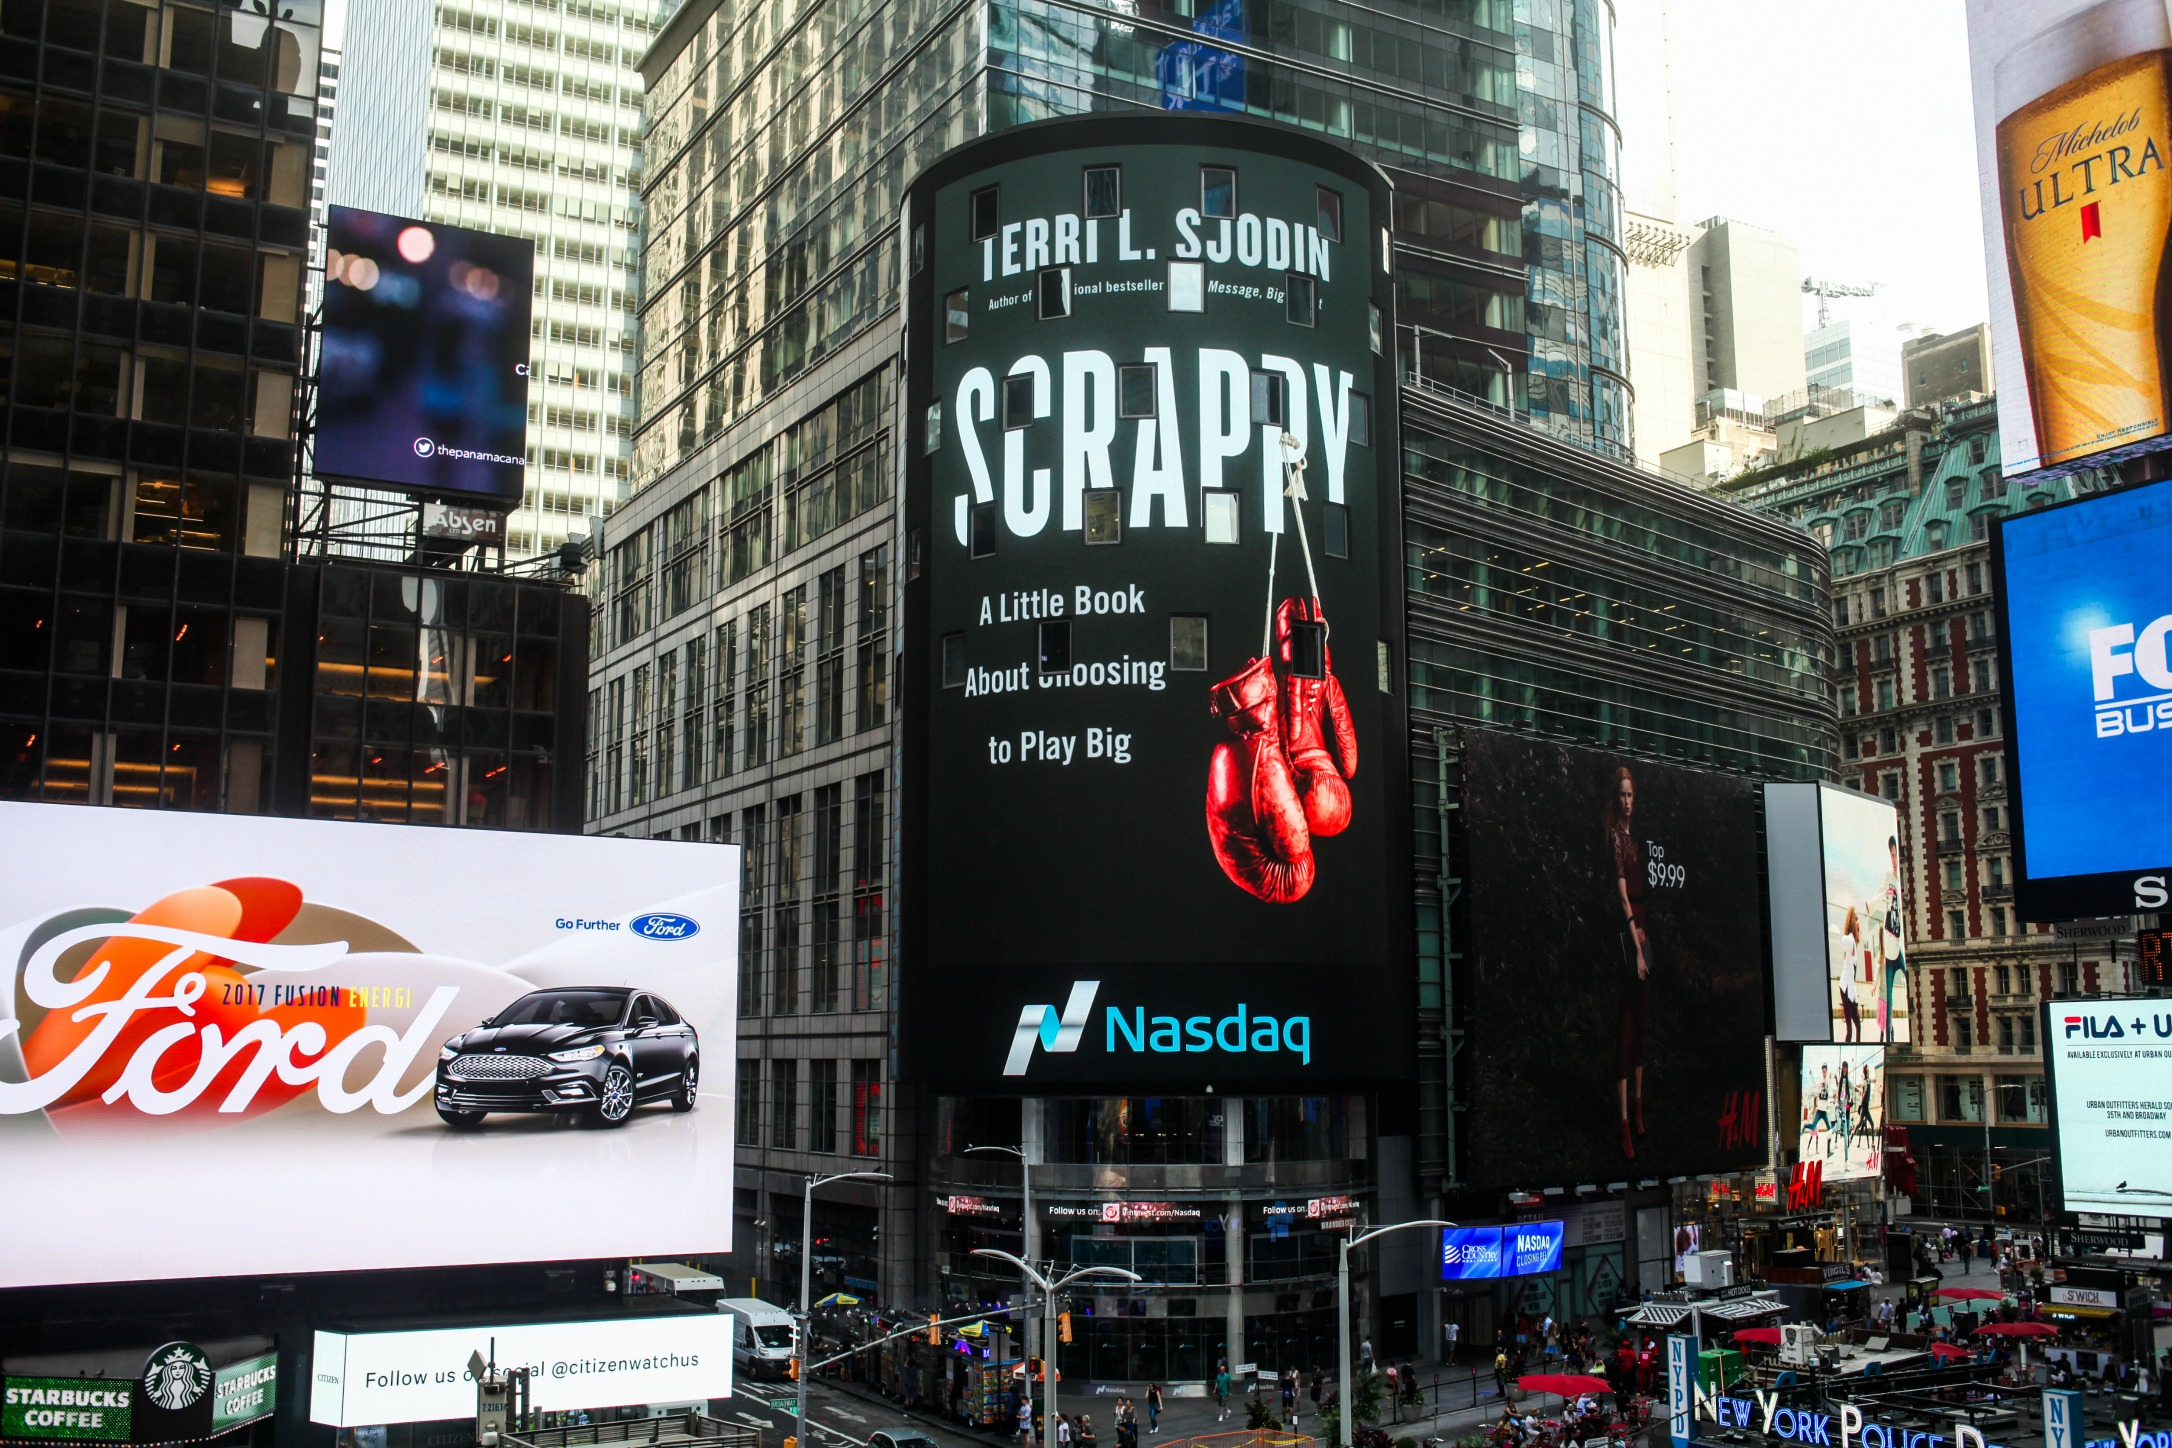 Scrappy Book Cover on the NASDAQ Screen in Time Square, NYC